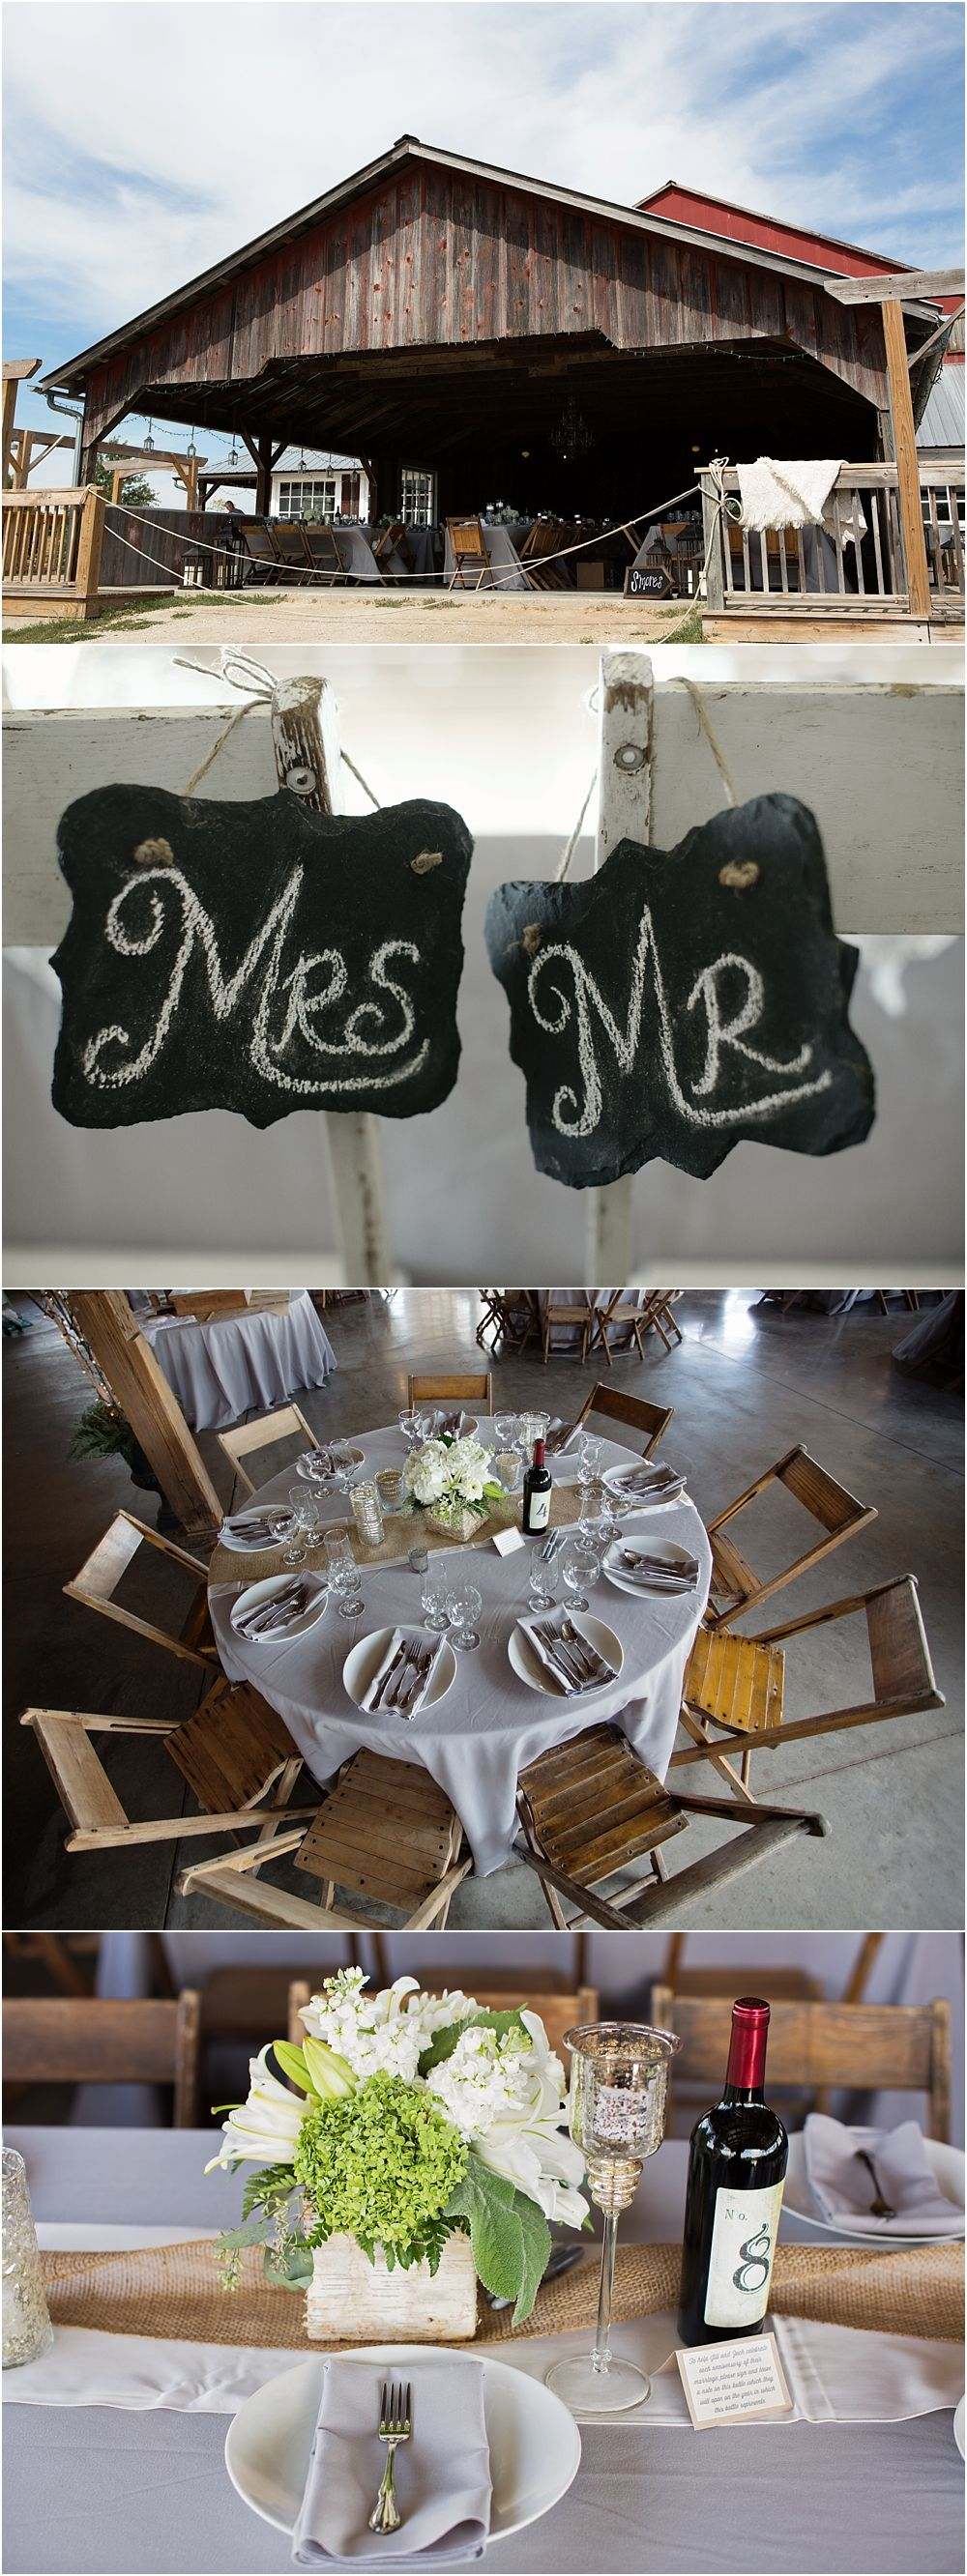 Rustic Farm wedding published in the Knot Magazine ...